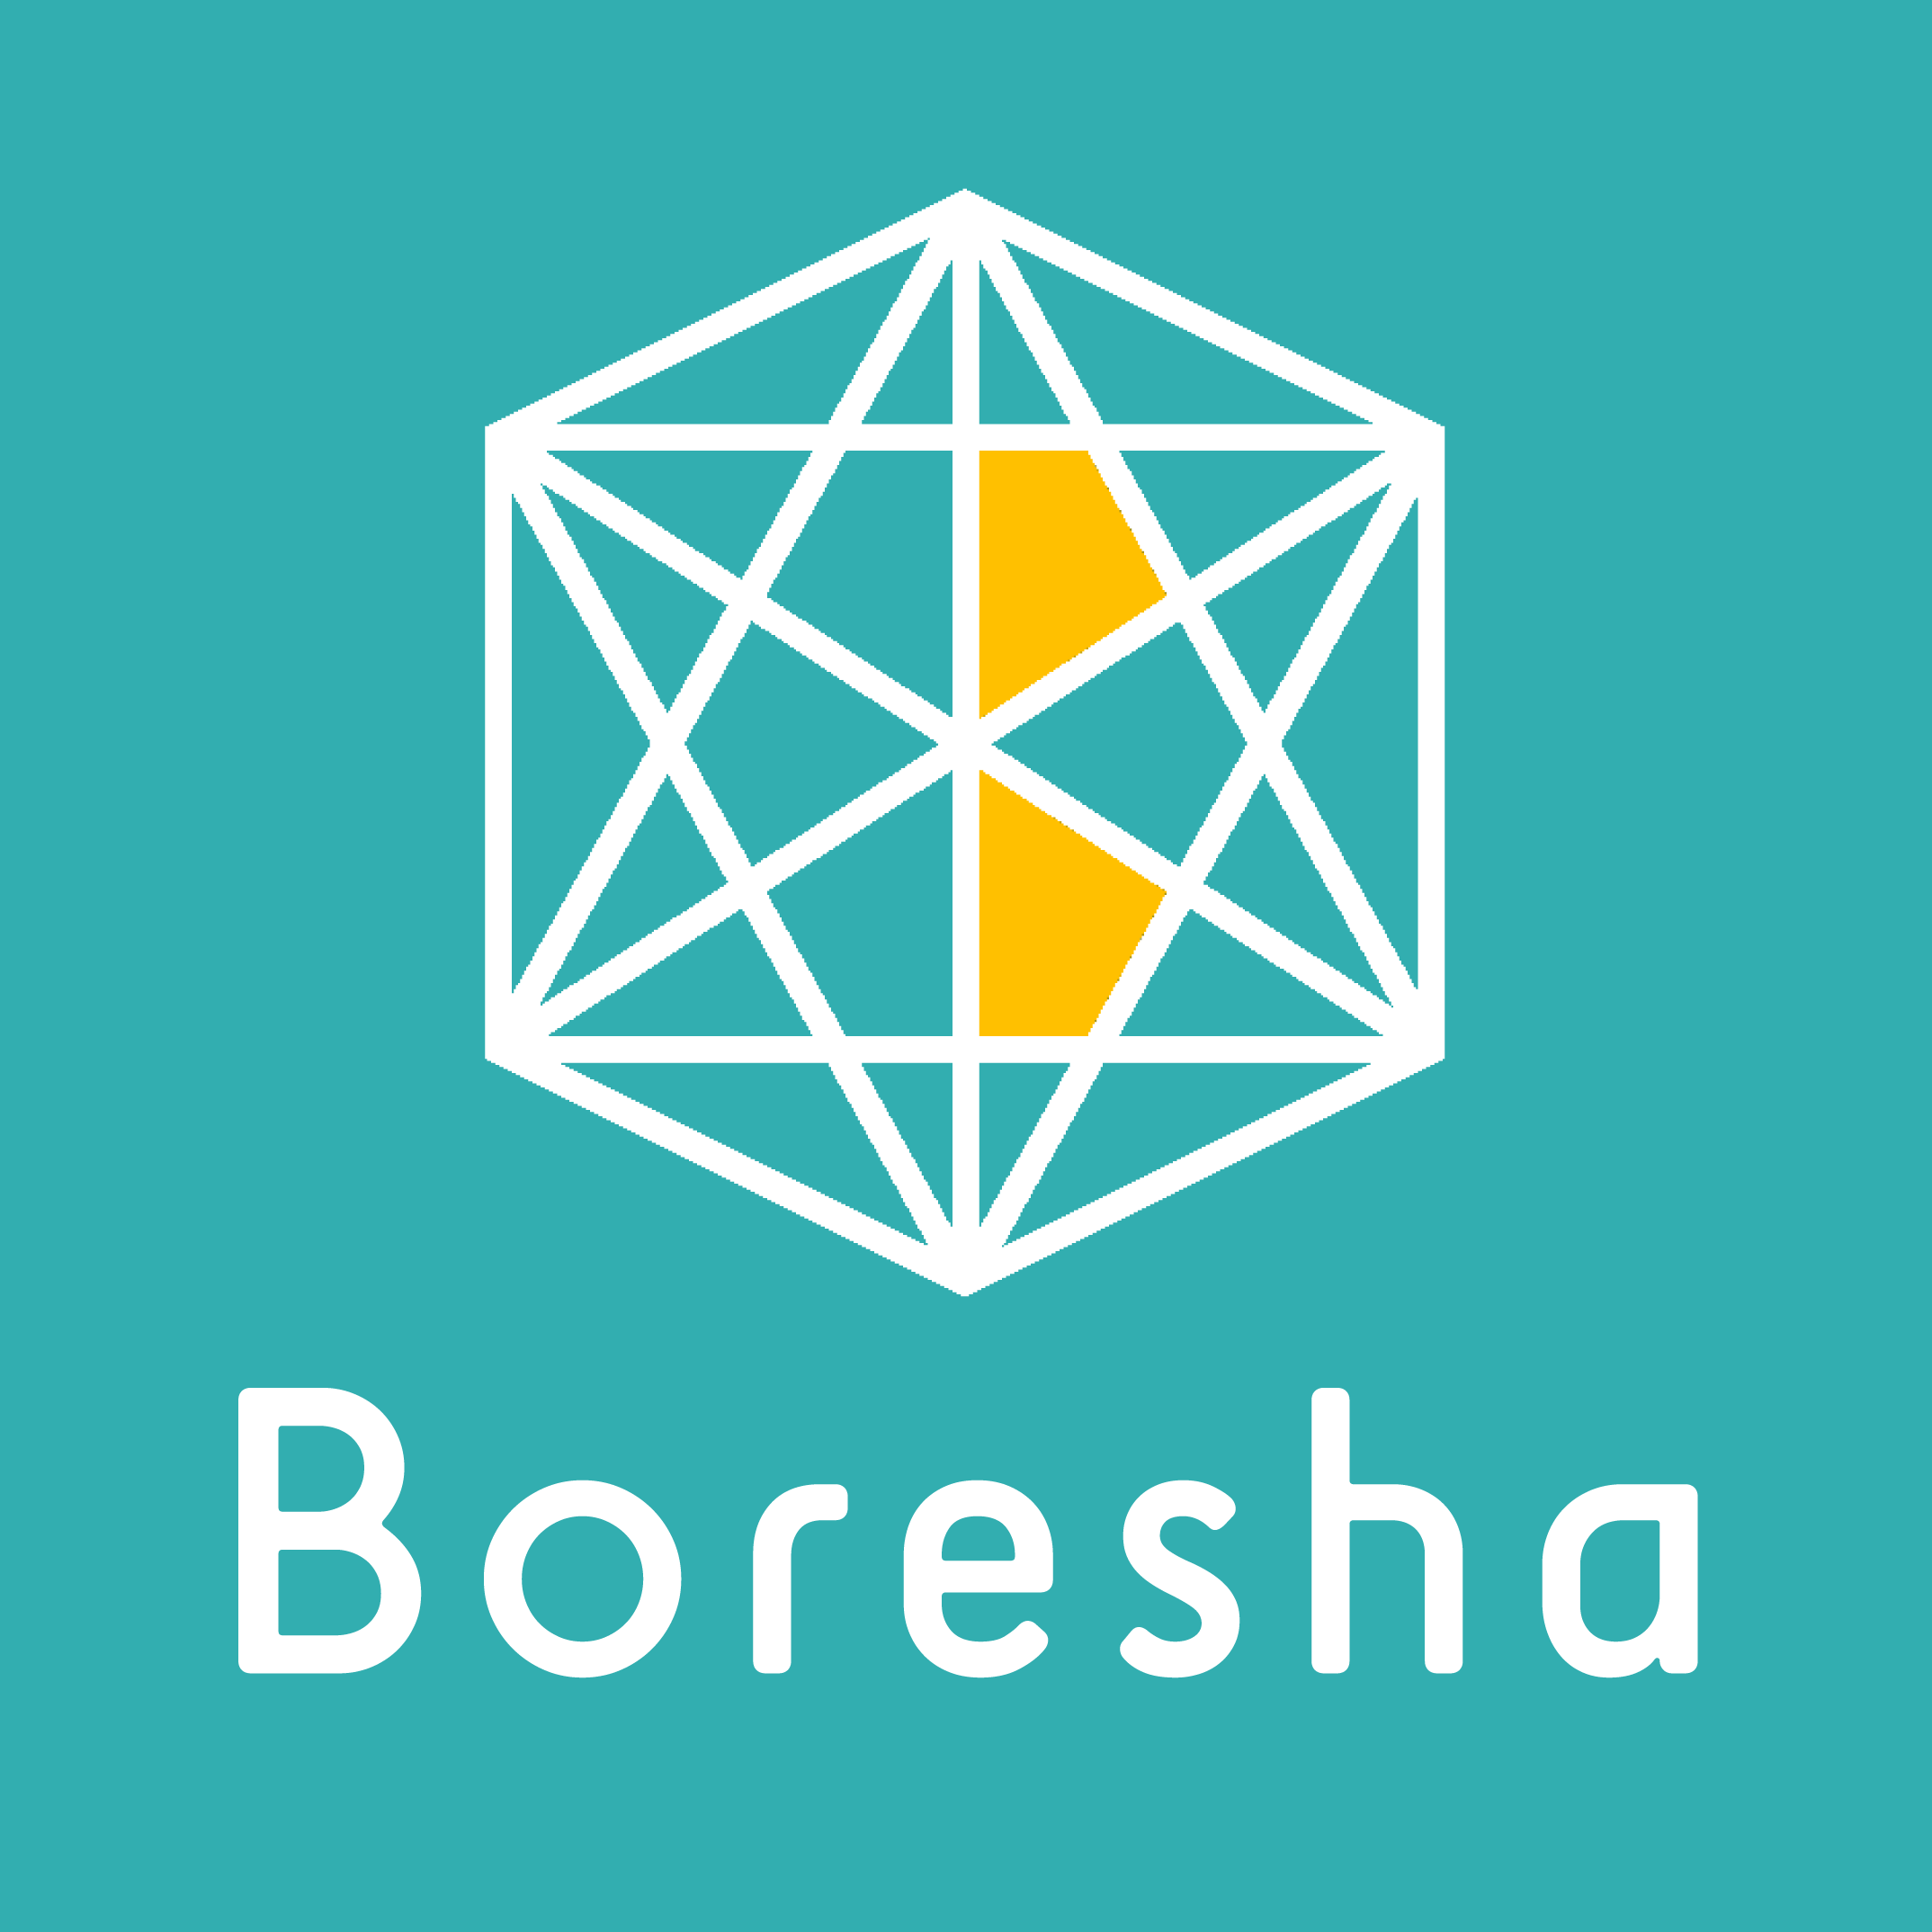 Boresha - Boresha - a kiswahili word meaning 'optimise' or 'connect' - was founded by Francis, Alexandre, and James in late 2017. Entering Rhodes Incubator as an early-stage concept, Boresha launched its financial services platform for East Africa in January 2018. The model: Boresha leverages relationships between small farmers and the aggregators who buy produce, in order to facilitate low-risk lending to both parties. Boresha is positioned to facilitate the lowest-interest, lowest-friction loans for smallholder farmers in the informal dairy sector. #agritech #finclusion #ruralinnovation